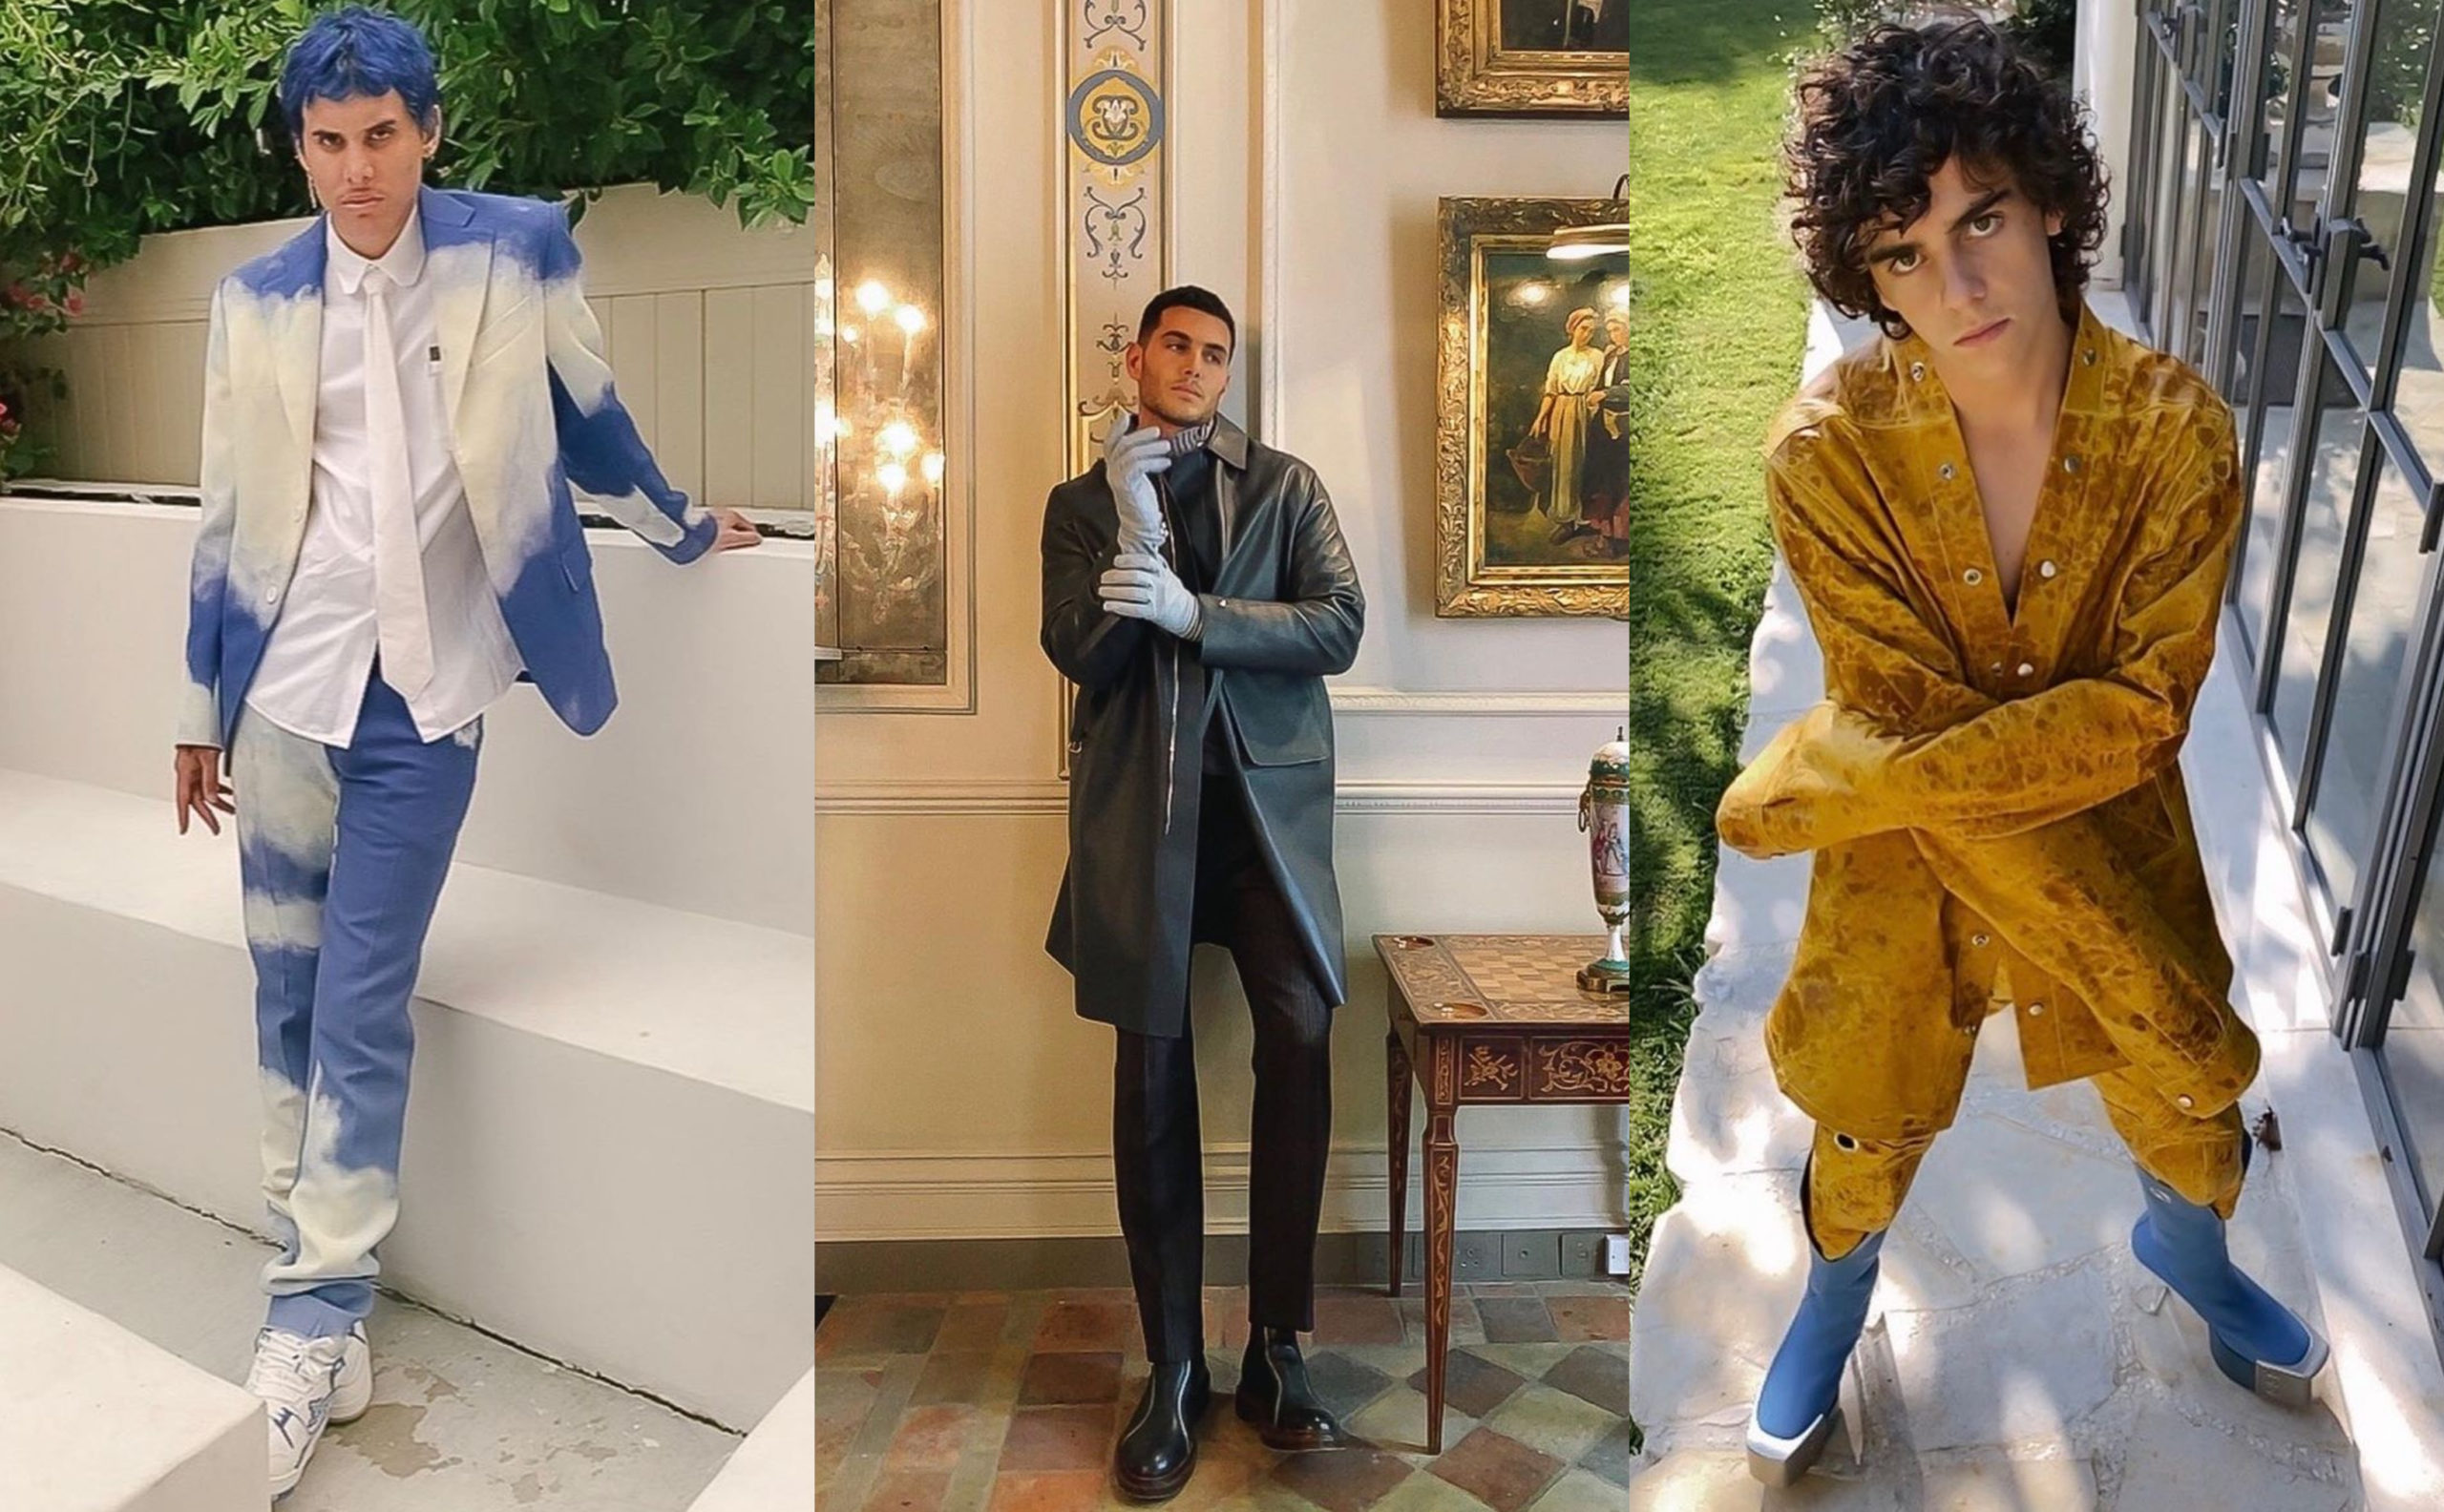 SPOTTED: The Virtual Attendees of The CFDA Fashion Awards